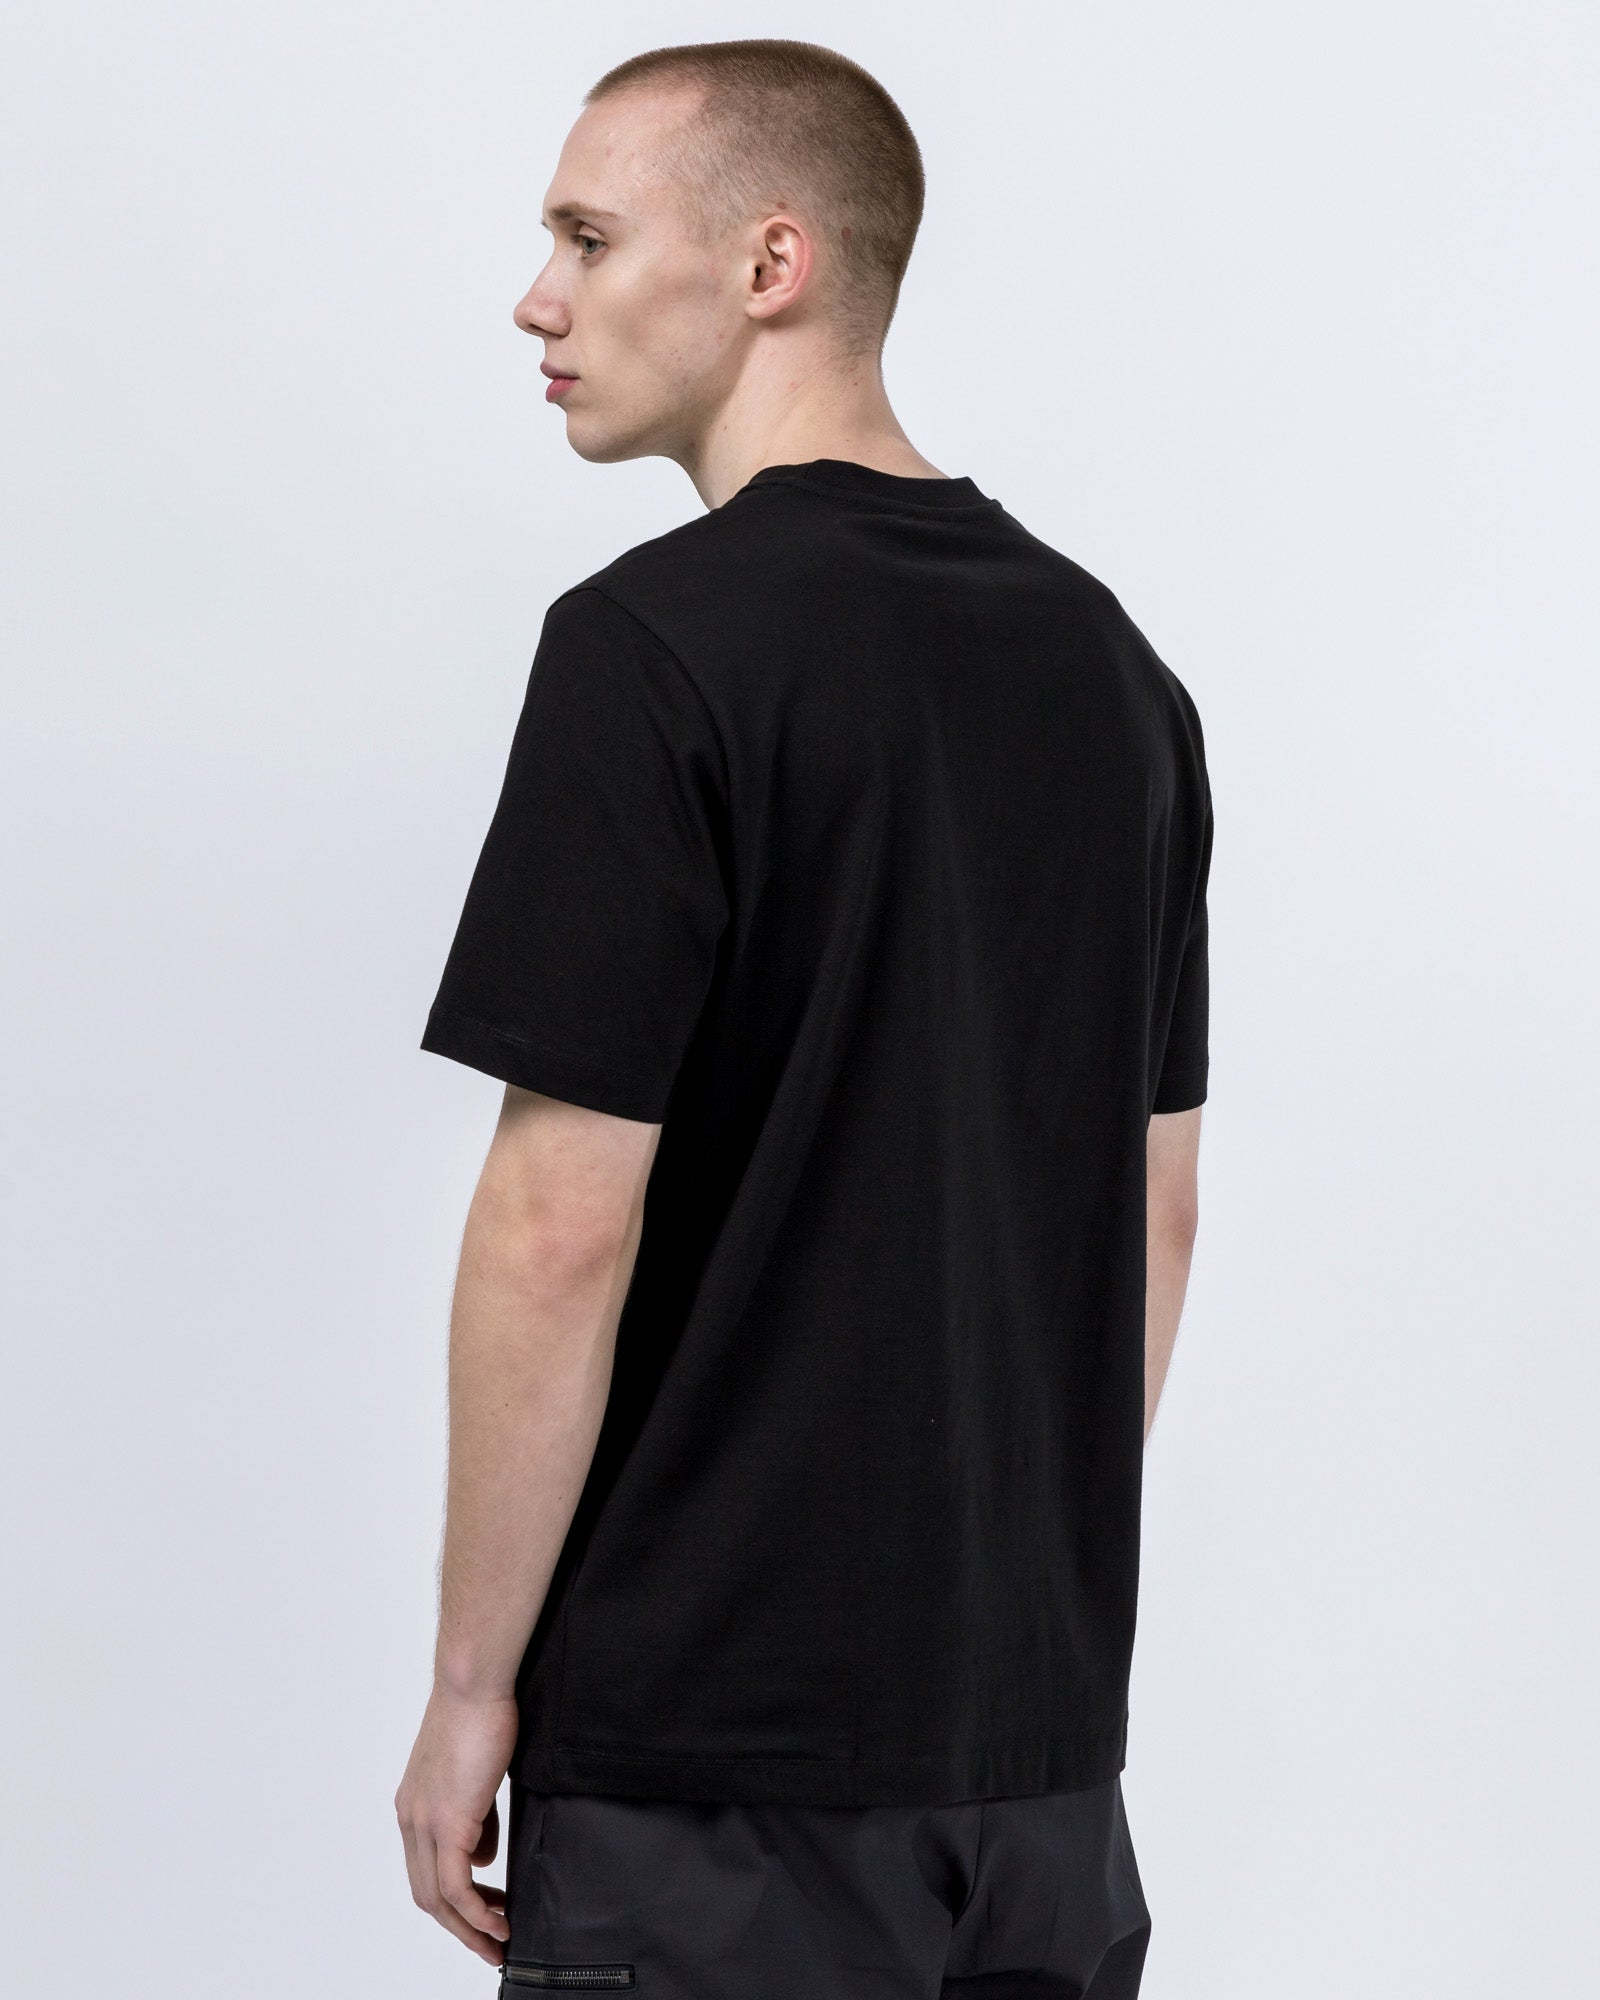 Numeral T-Shirt in Black